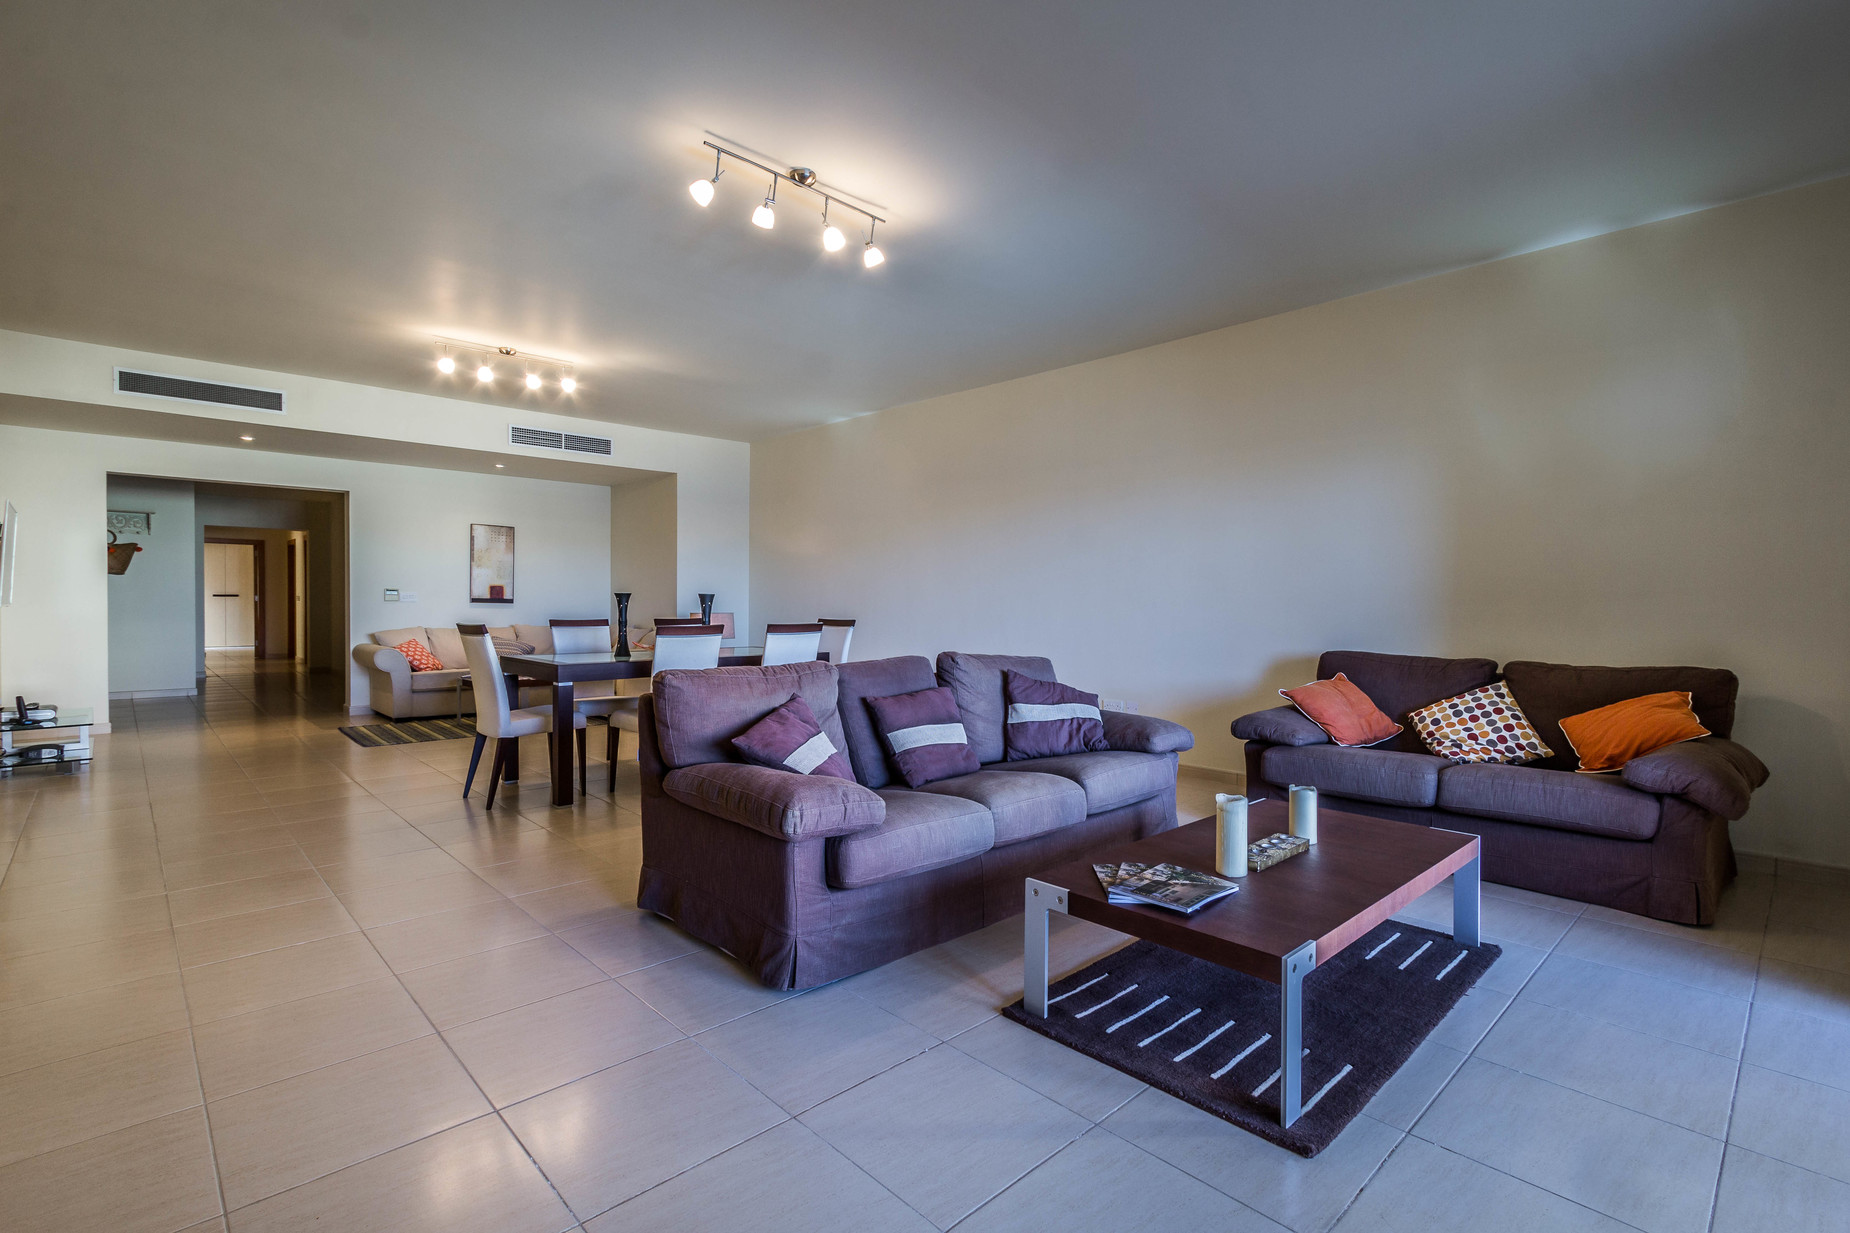 4 bed Apartment For Sale in Mellieha, Mellieha - thumb 8